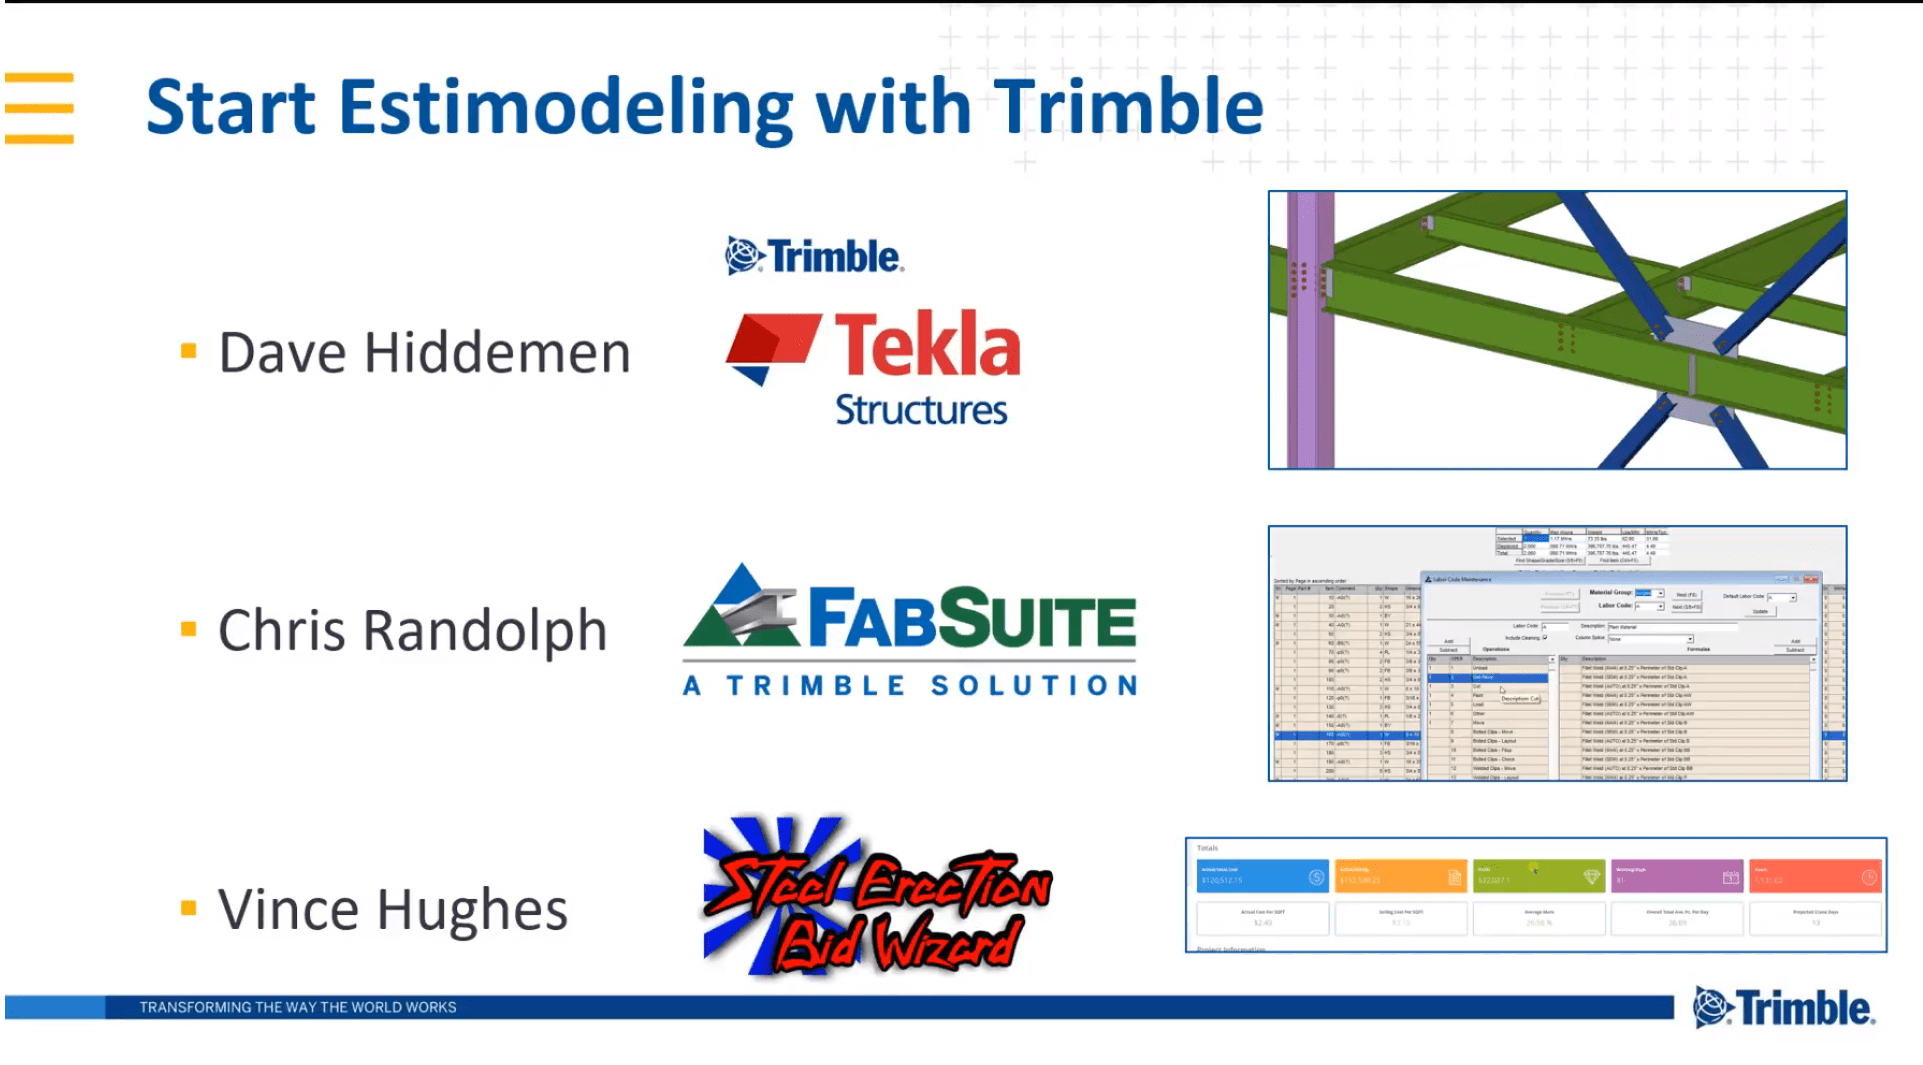 Estimodeling with Tekla Structures, FabSuite & Steel Erection Bid Wizard